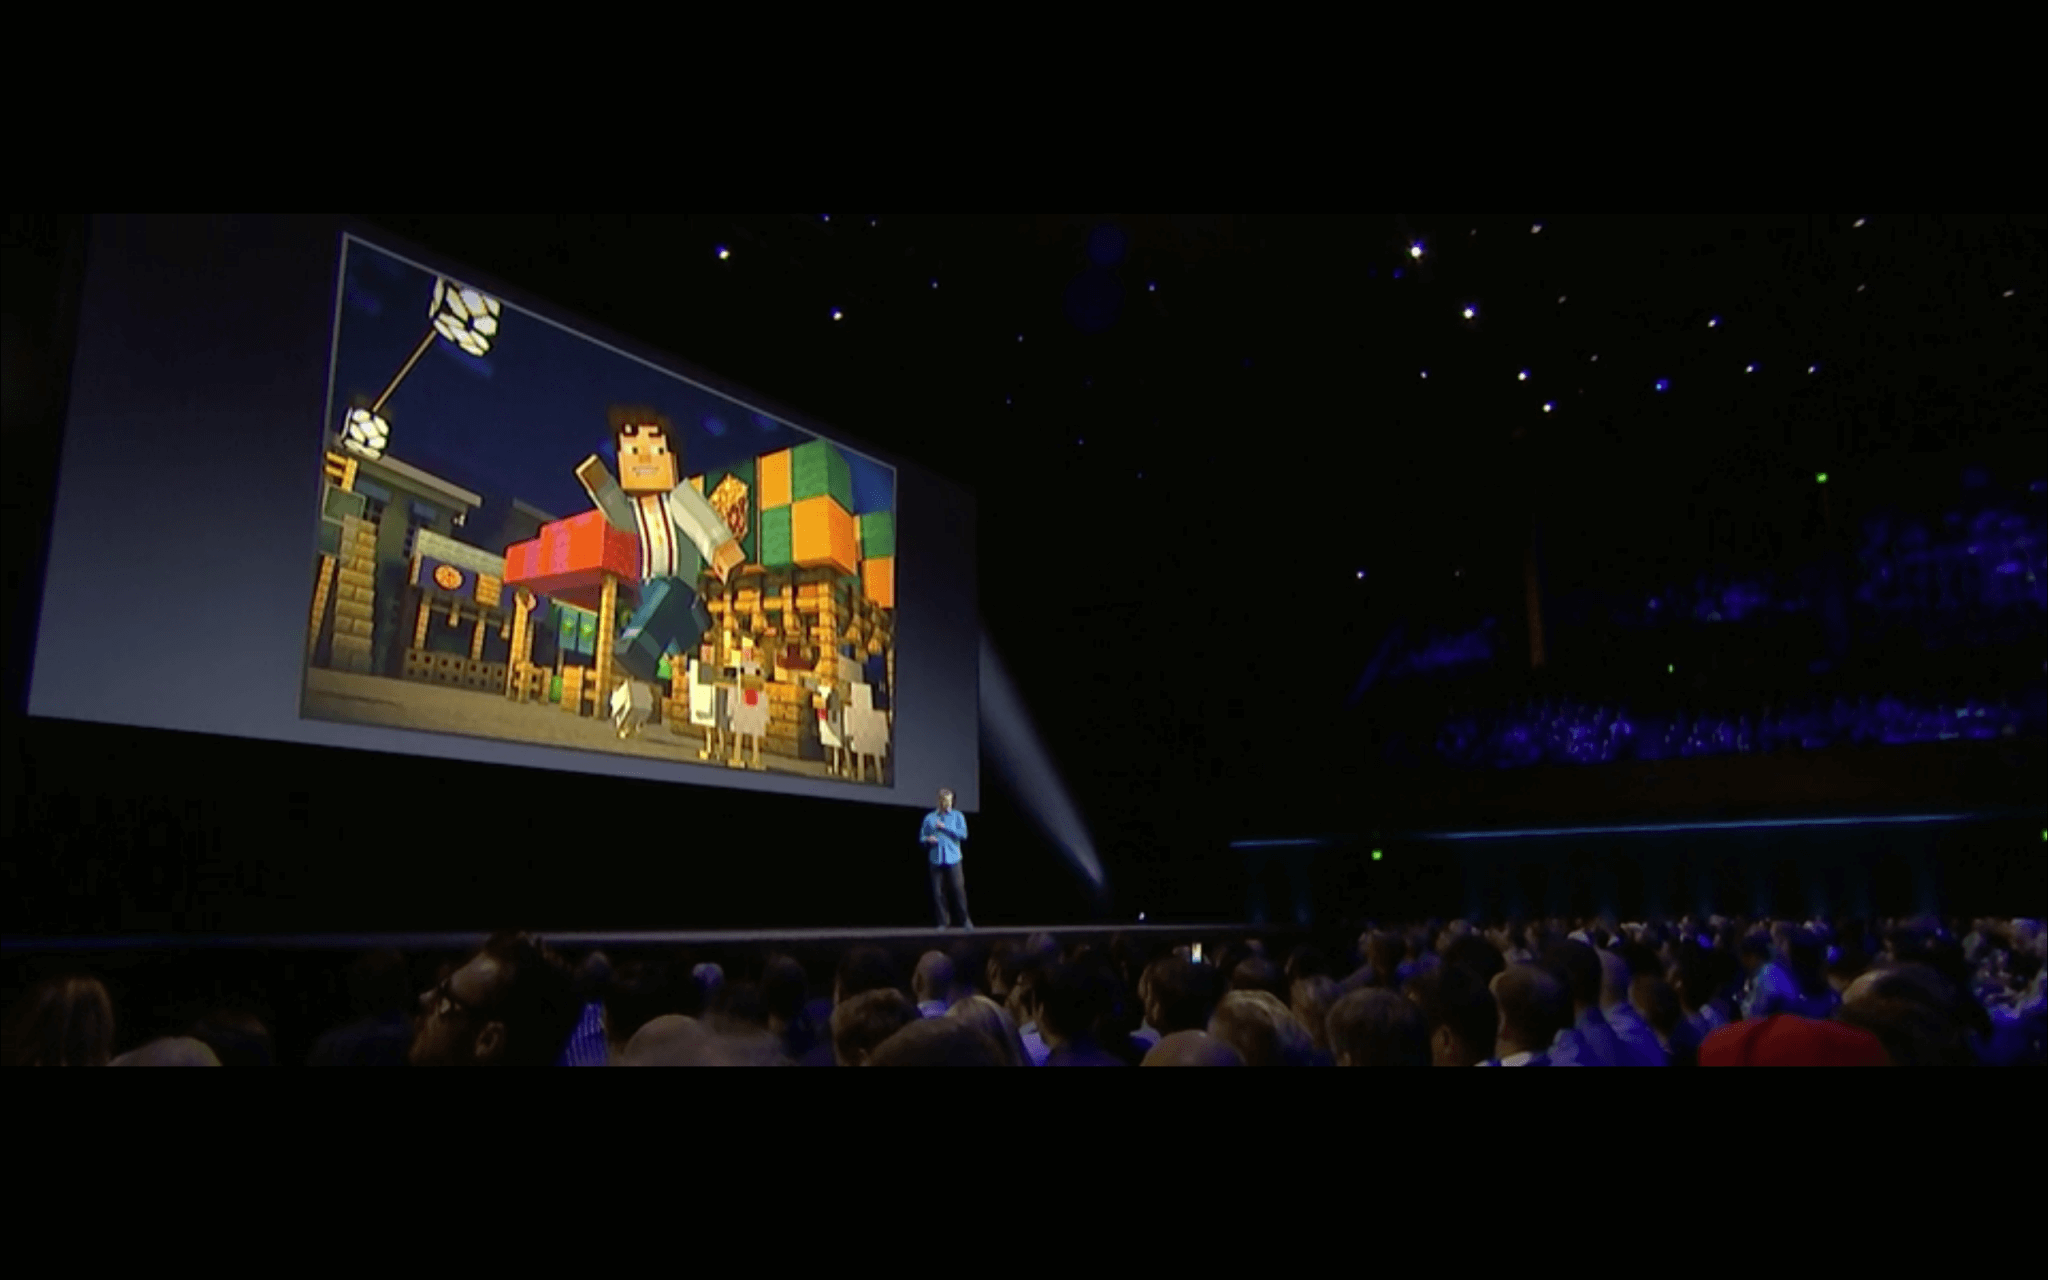 WWDC: Telltale bringt Minecraft: Story Mode aufs Apple TV (Screenshot von Apples Livestream)